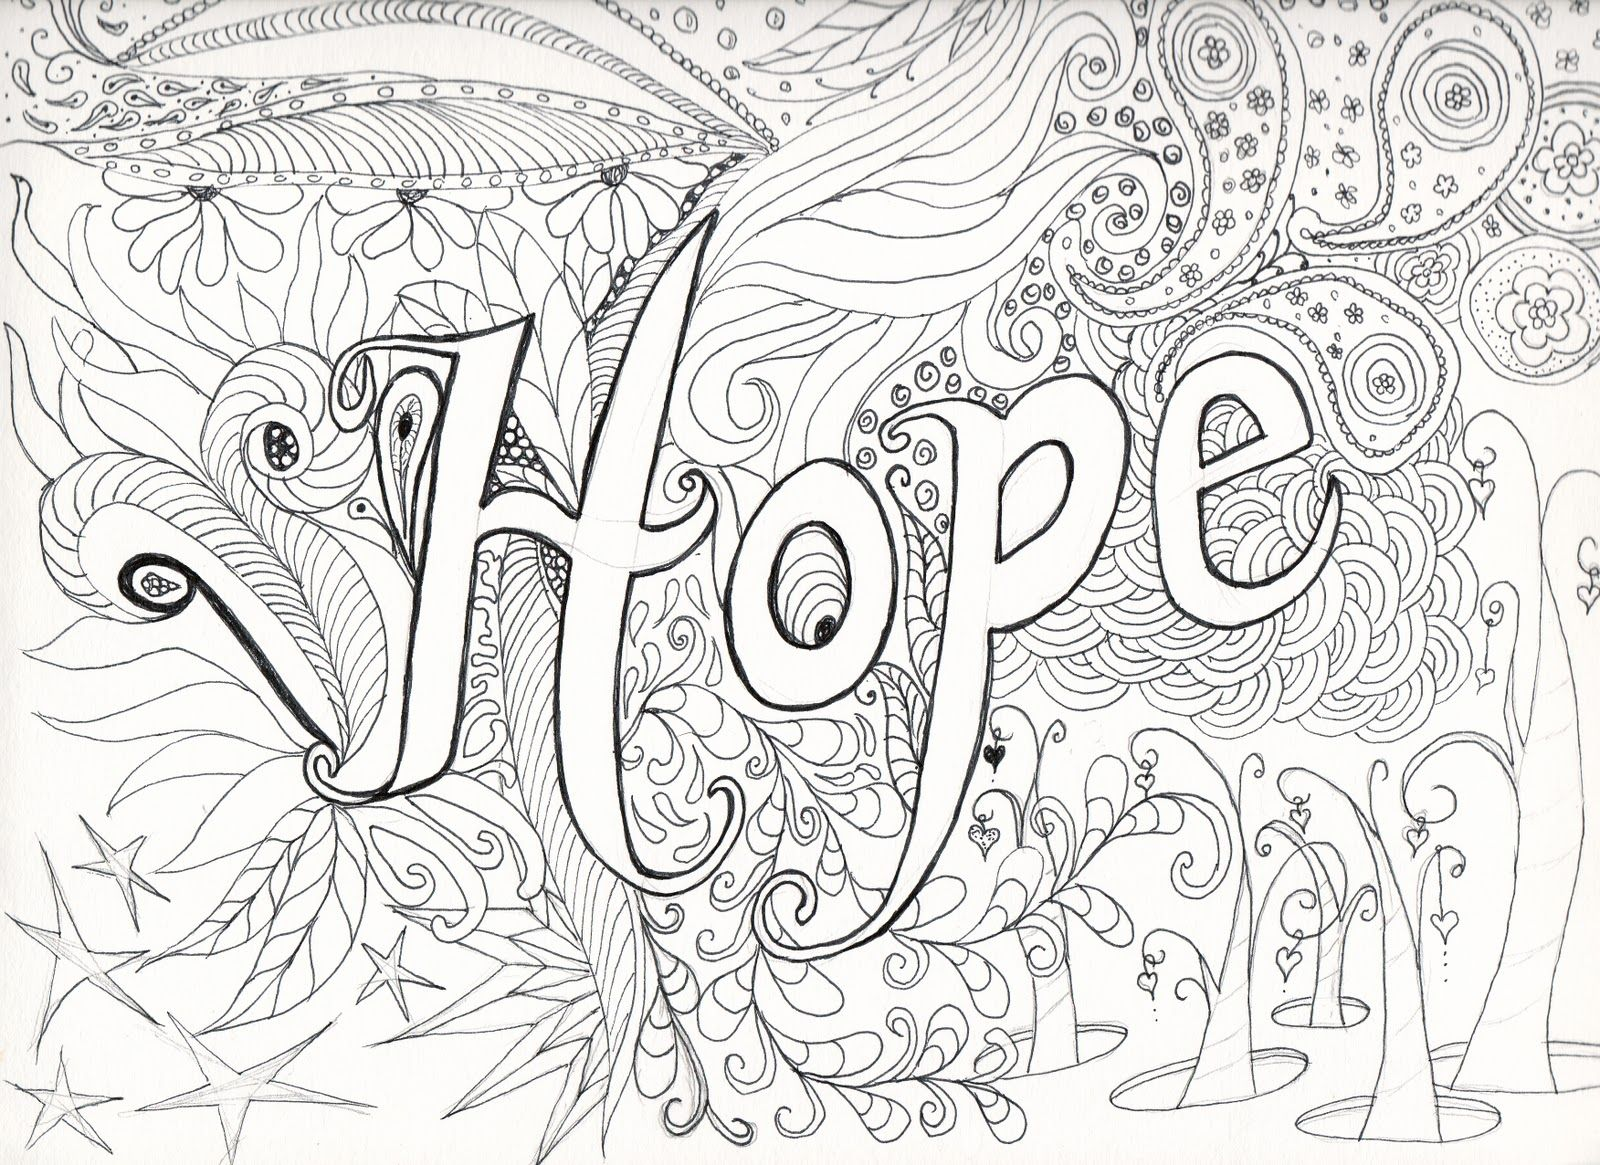 Difficult Mandala Coloring Pages Image Gallery For Intricate ...